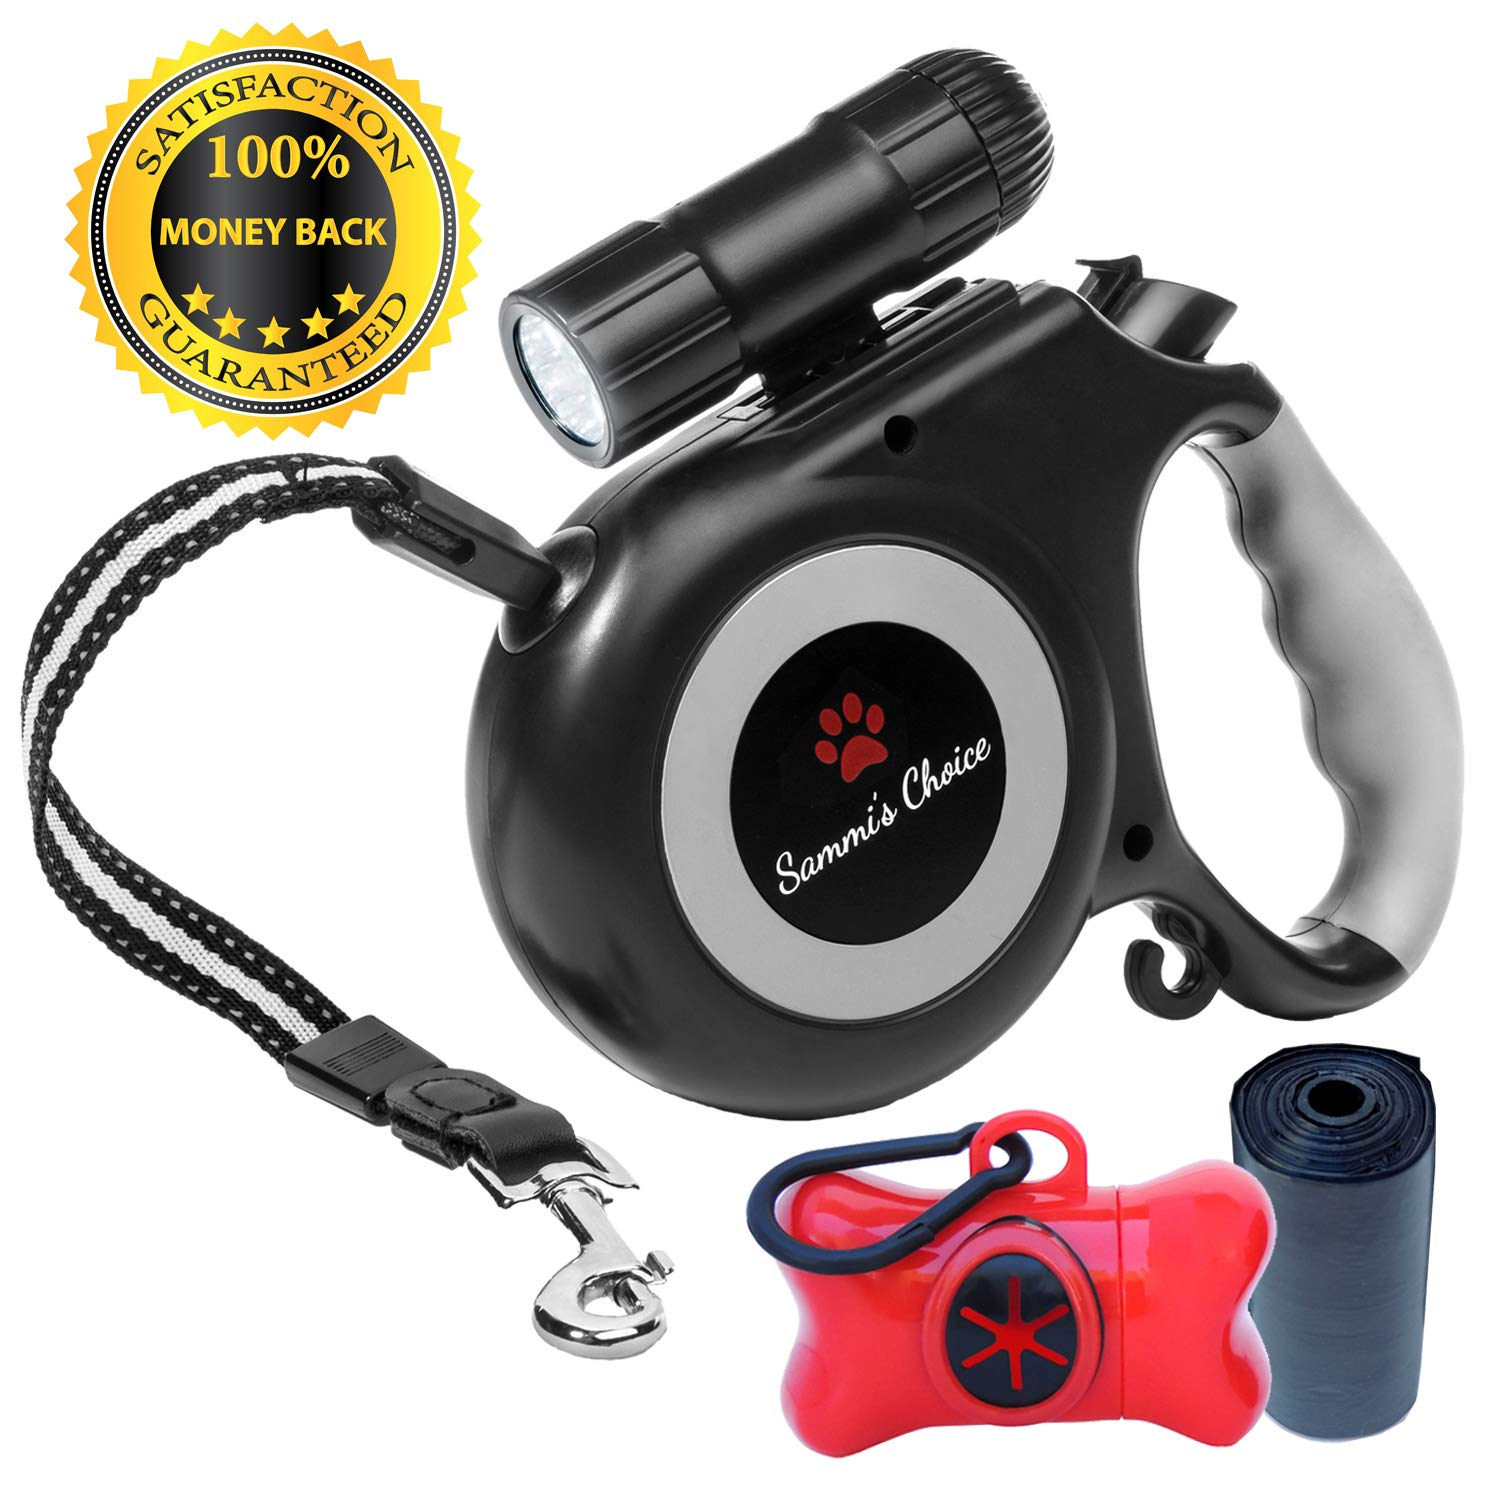 Retractable Dog Leash with Bright Flashlight For Small to Medium Breed Dogs, 16 ft Dog Walking Leash, Tangle Free Reinforced Nylon Cord, Dog Waste Dispenser Included - 100% Guarantee